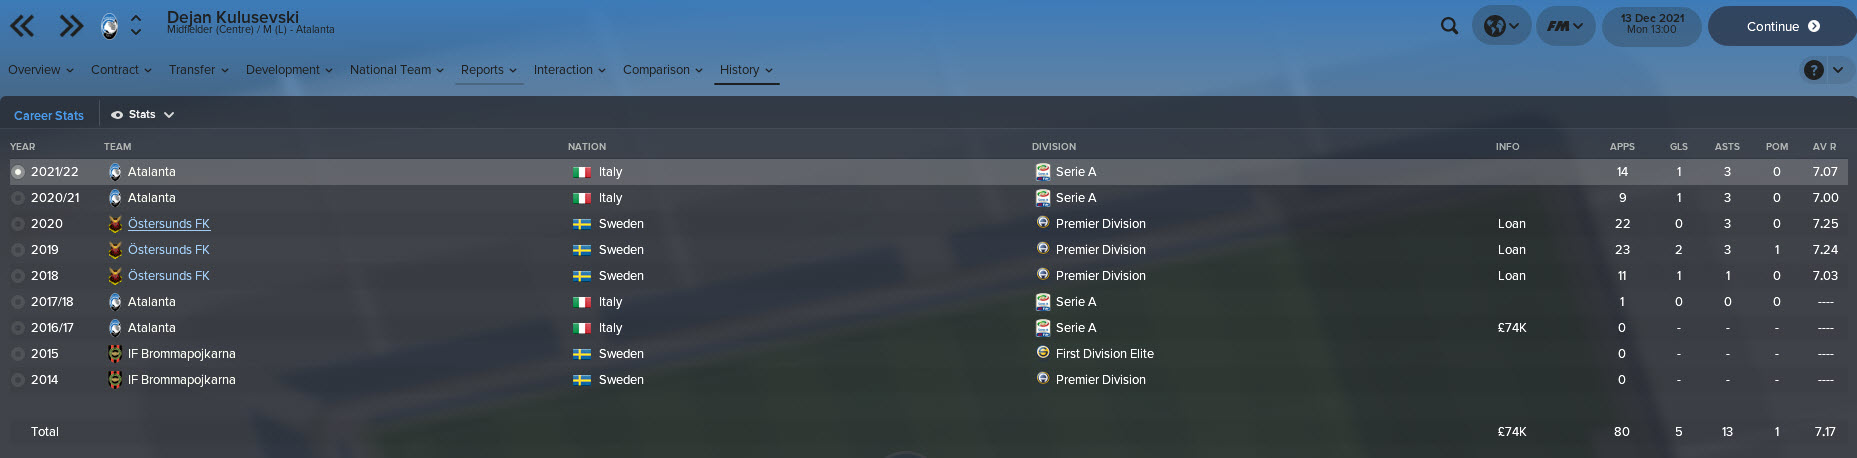 Transfer and Contract Tips | Football Manager Guide to Buying and